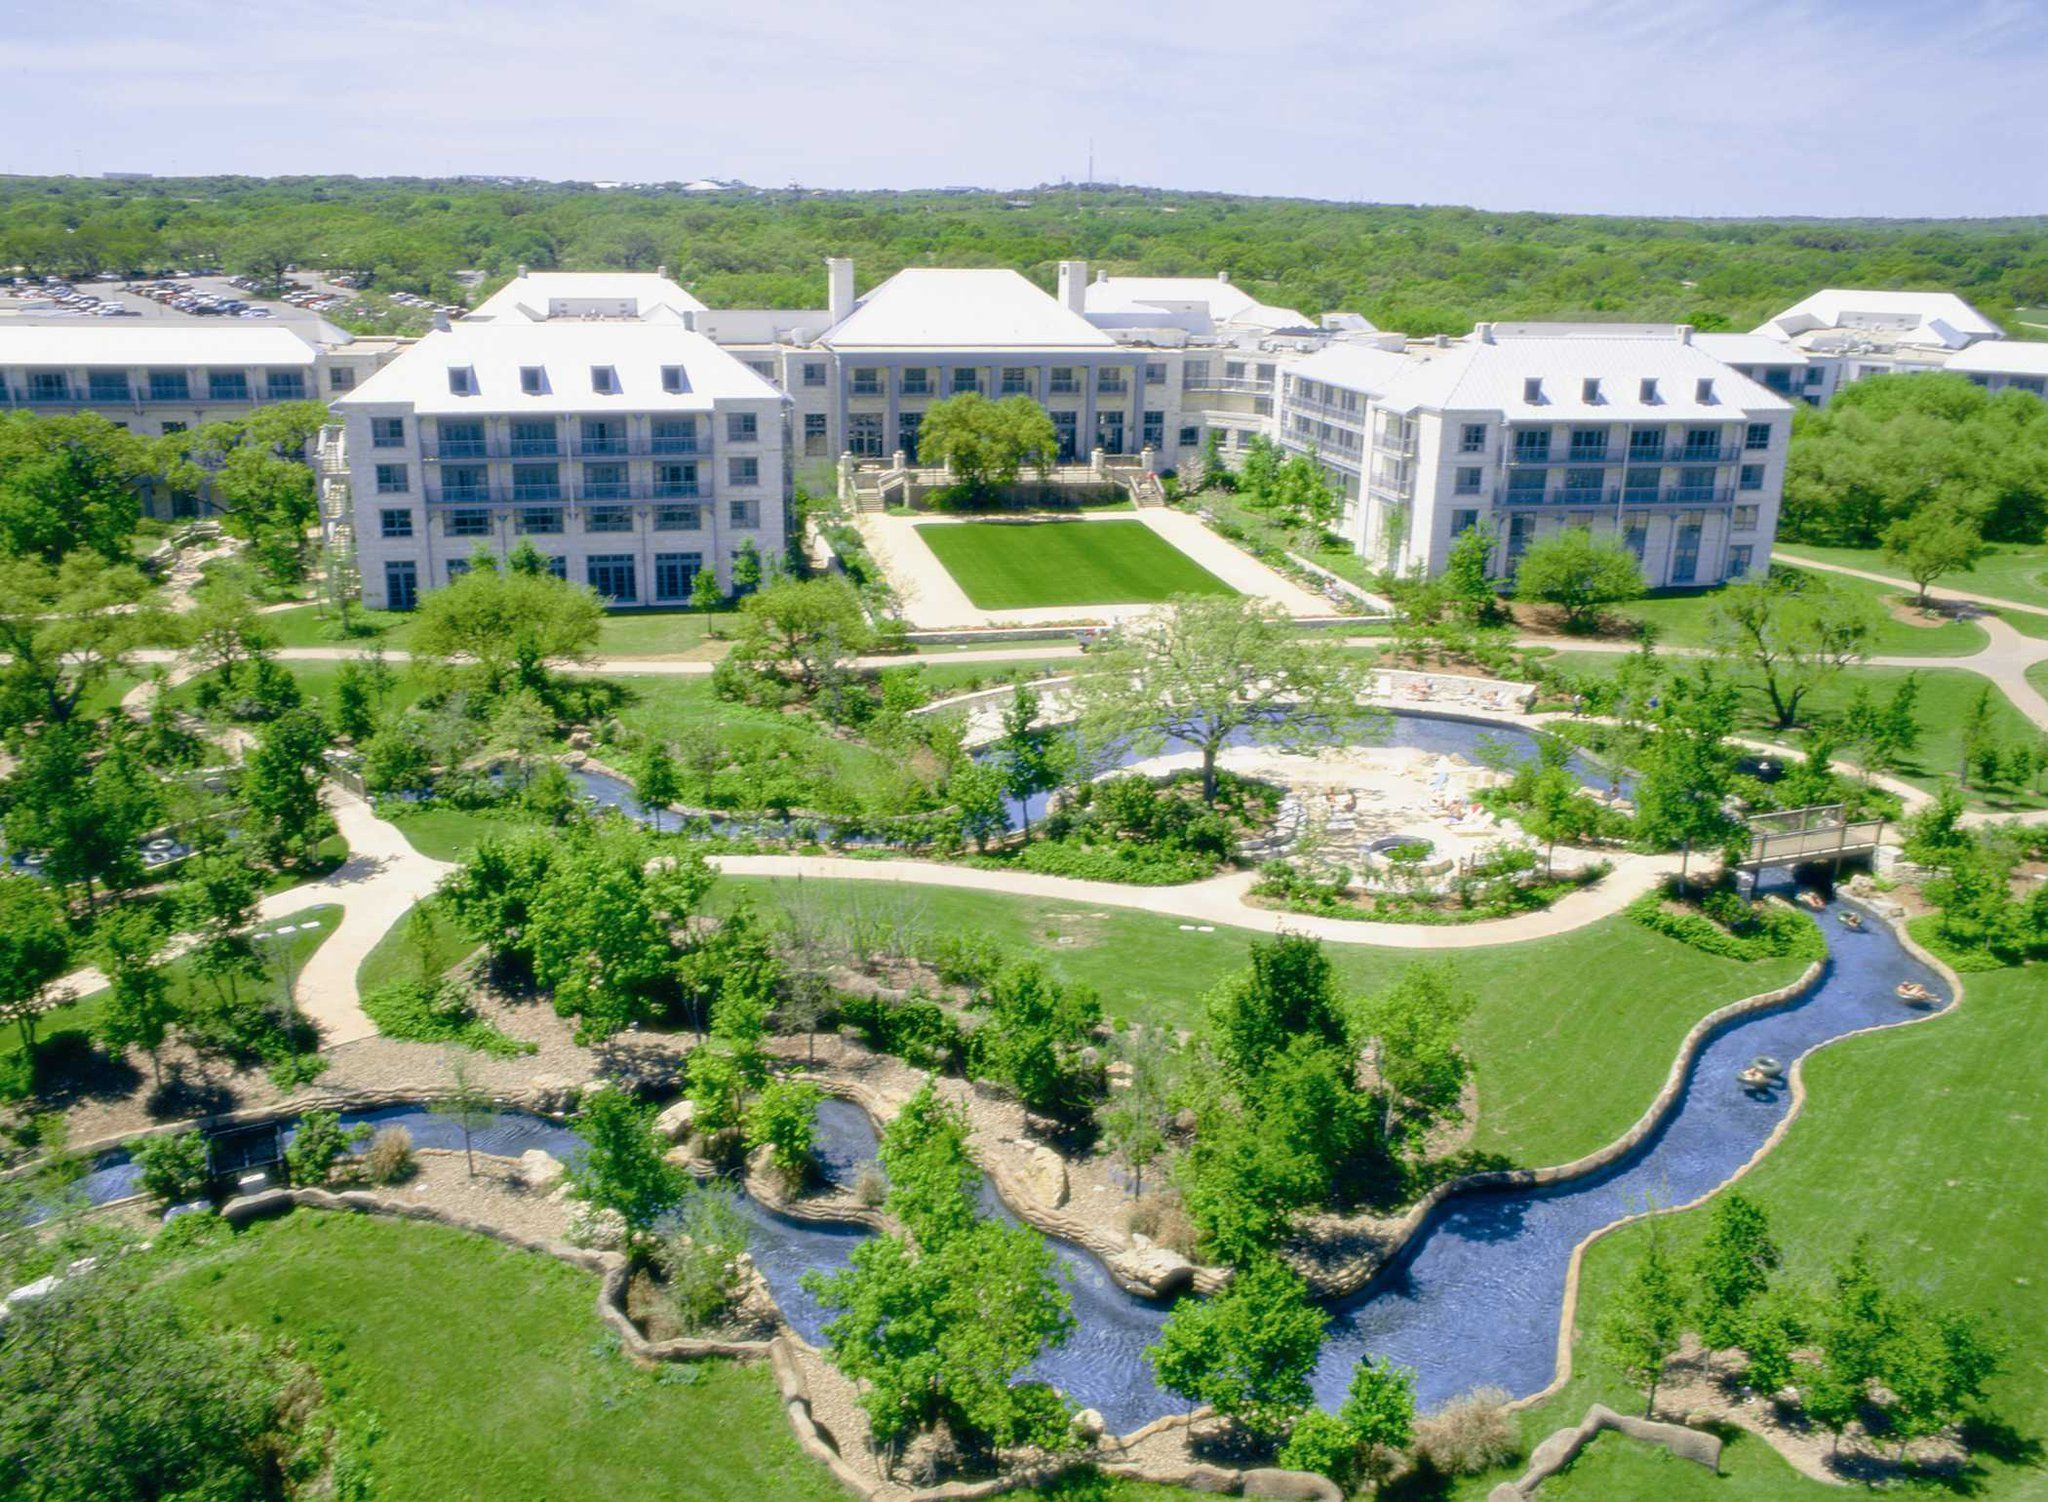 Hyatt Regency Hill Country Resort Texas This Place Is